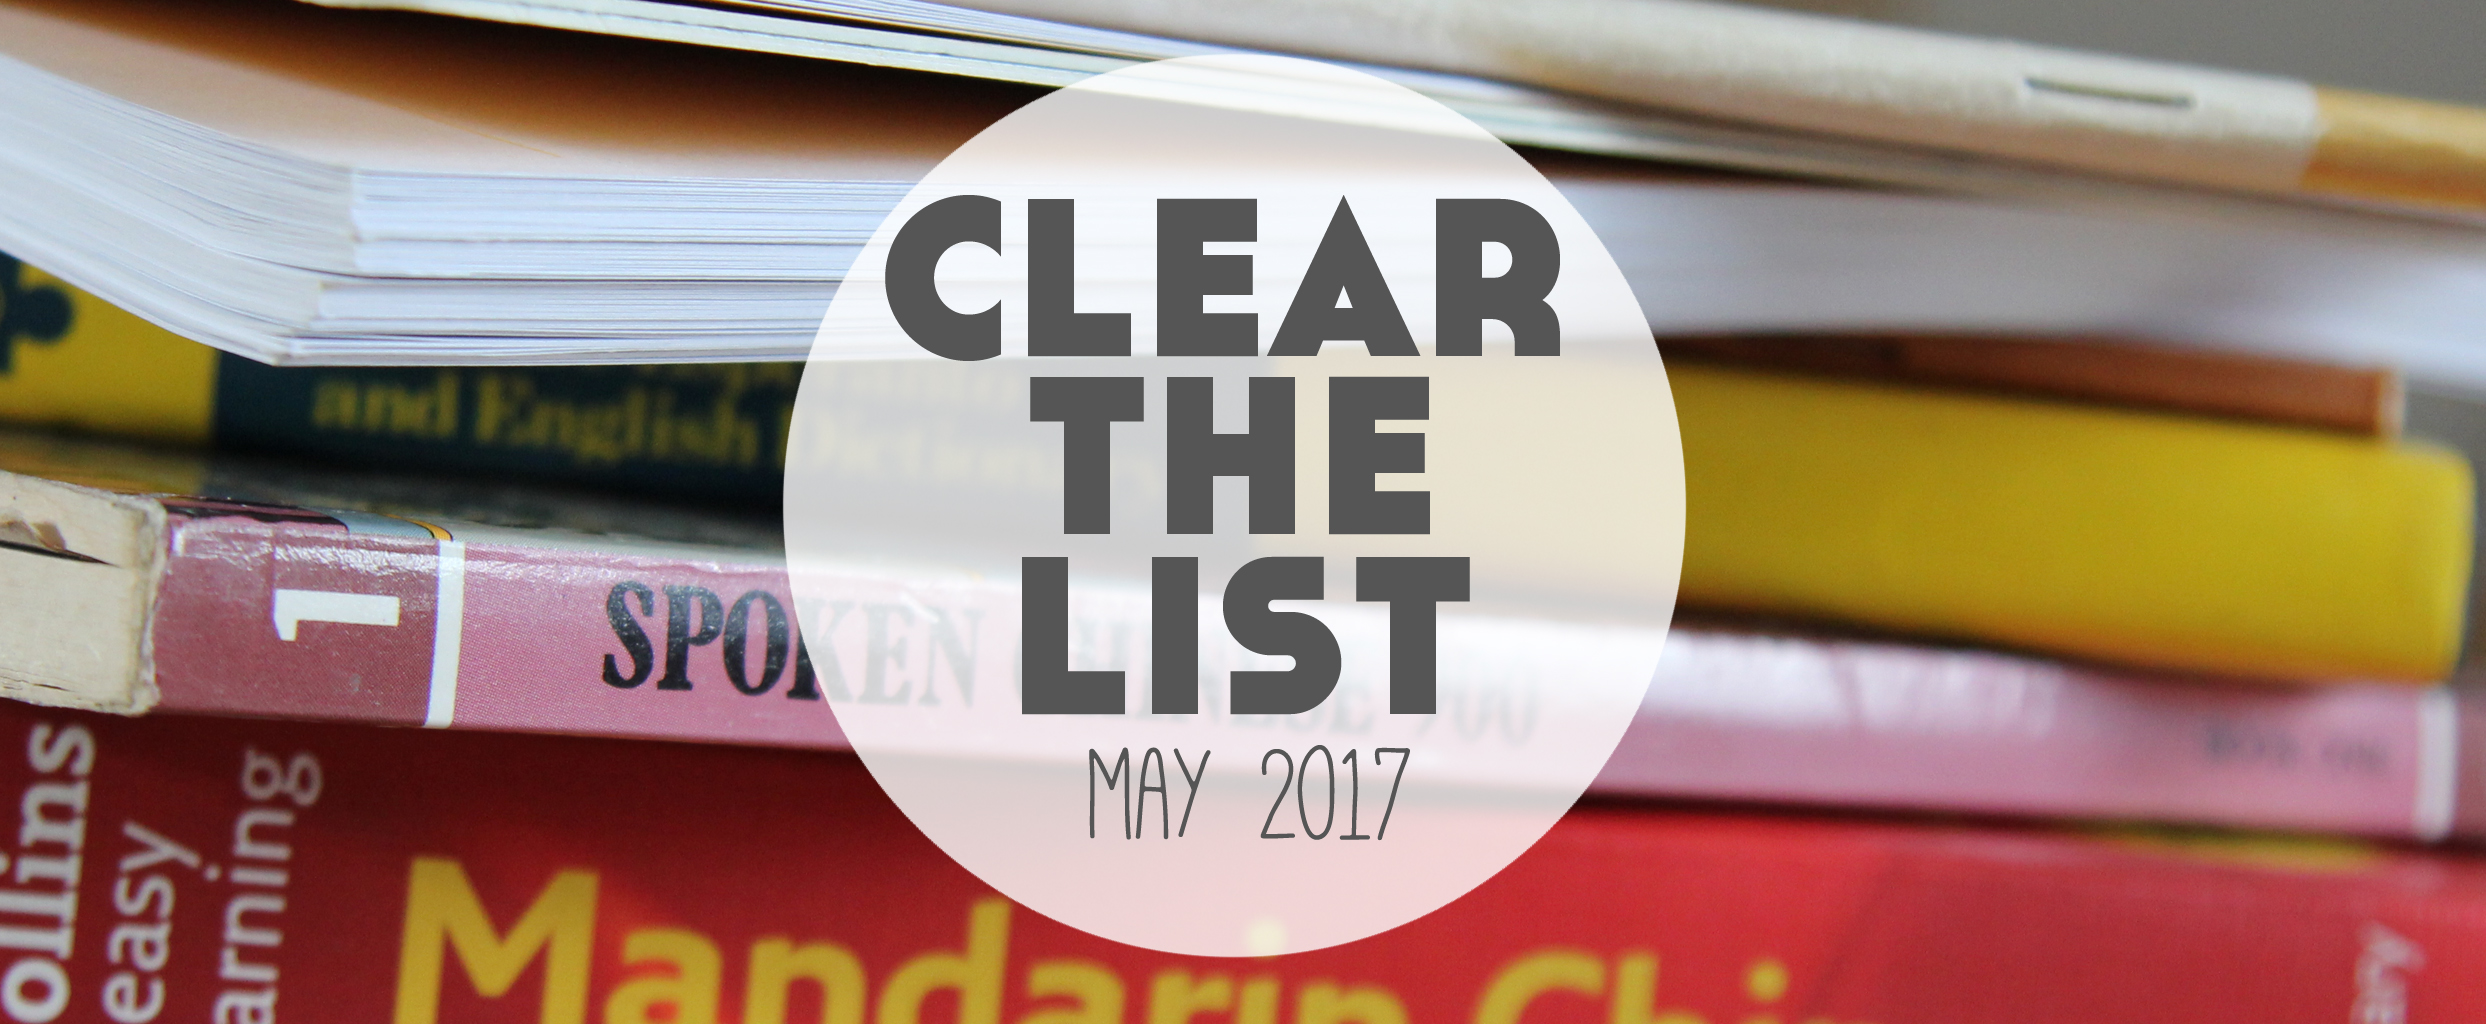 Language Learning Goals  Clear The List May 2017